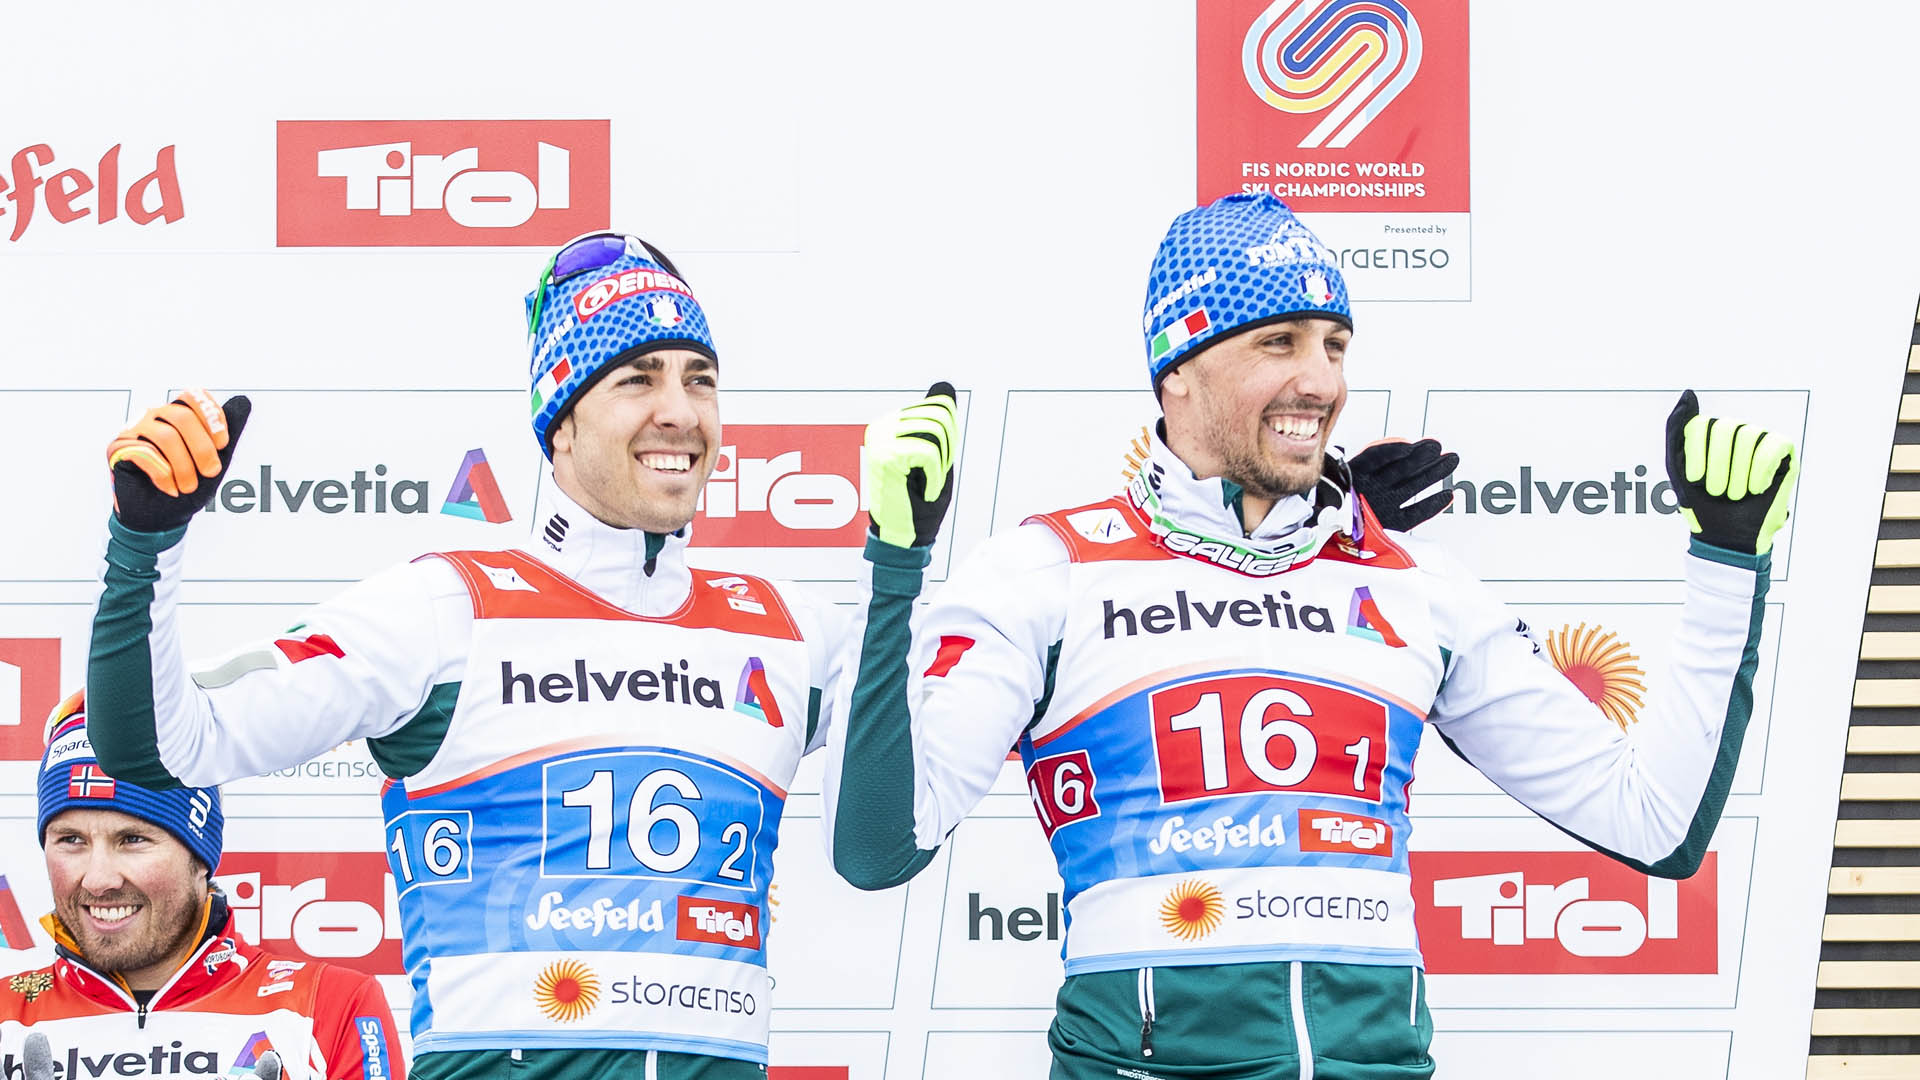 DE FABIANI AND PELLEGRINO BRONZE AT THE WORLDS TEAM SPRINT IN SEEFELD